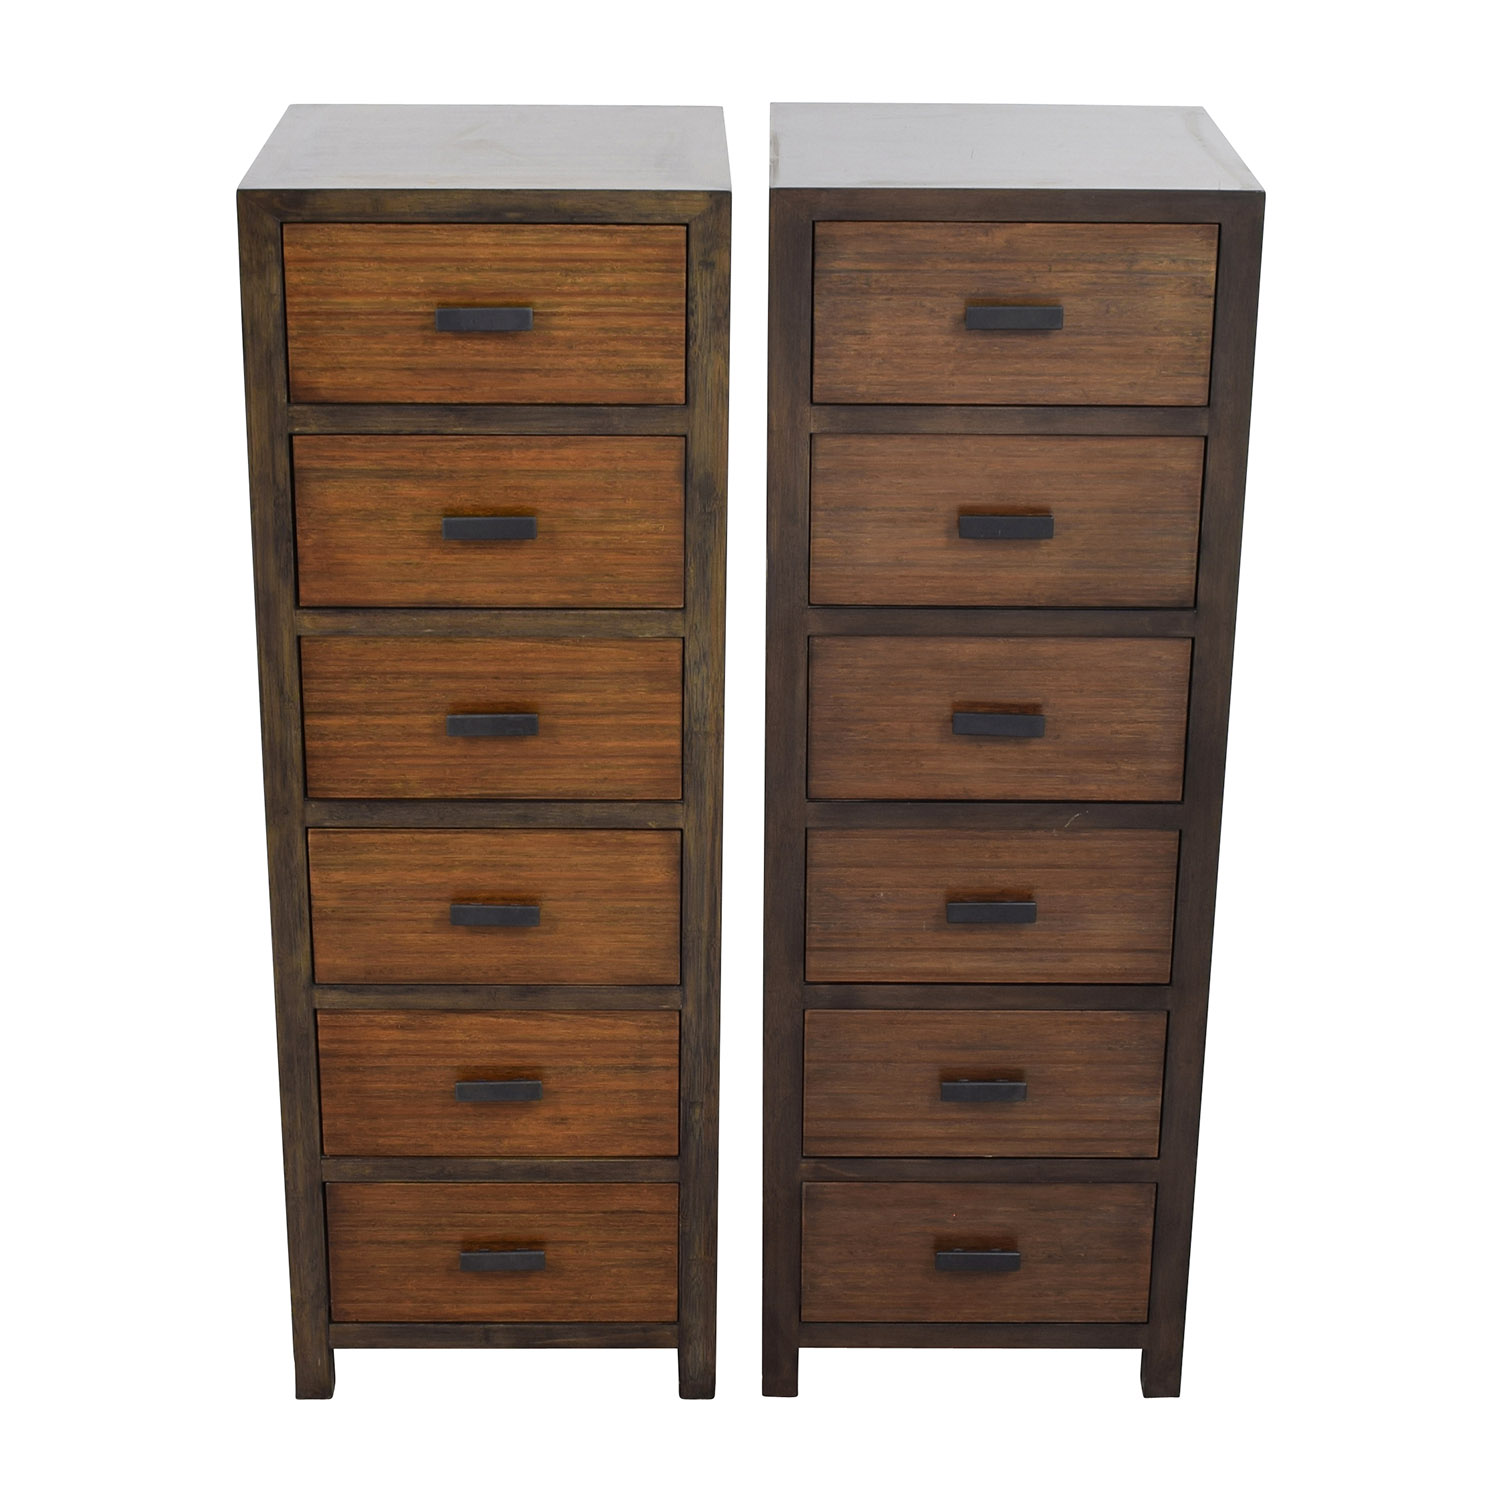 quebec narrow online all bedroom drawer chest uk core dresser slim products drawers chests of wooden tall